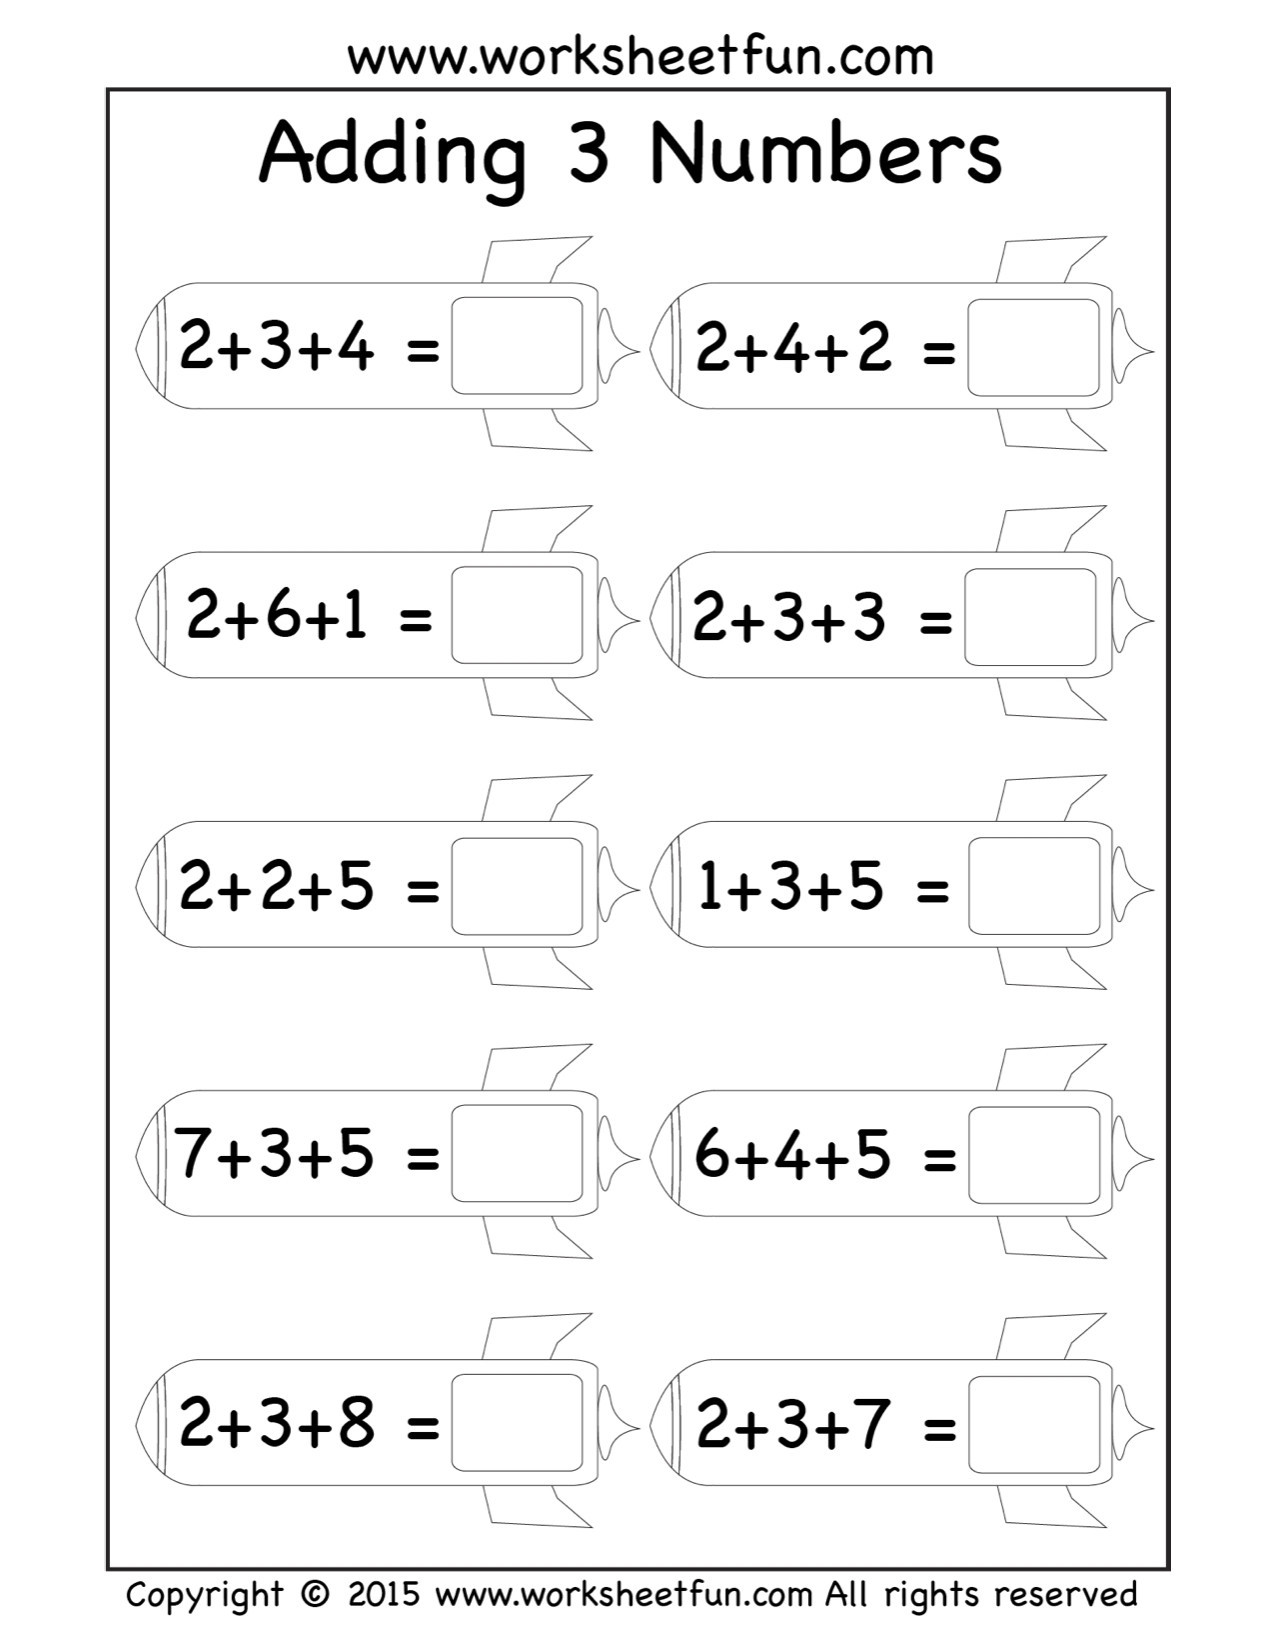 Missing Addends Worksheets 1st Grade 5 Free Math Worksheets First Grade 1 Addition Add 2 Digit 1